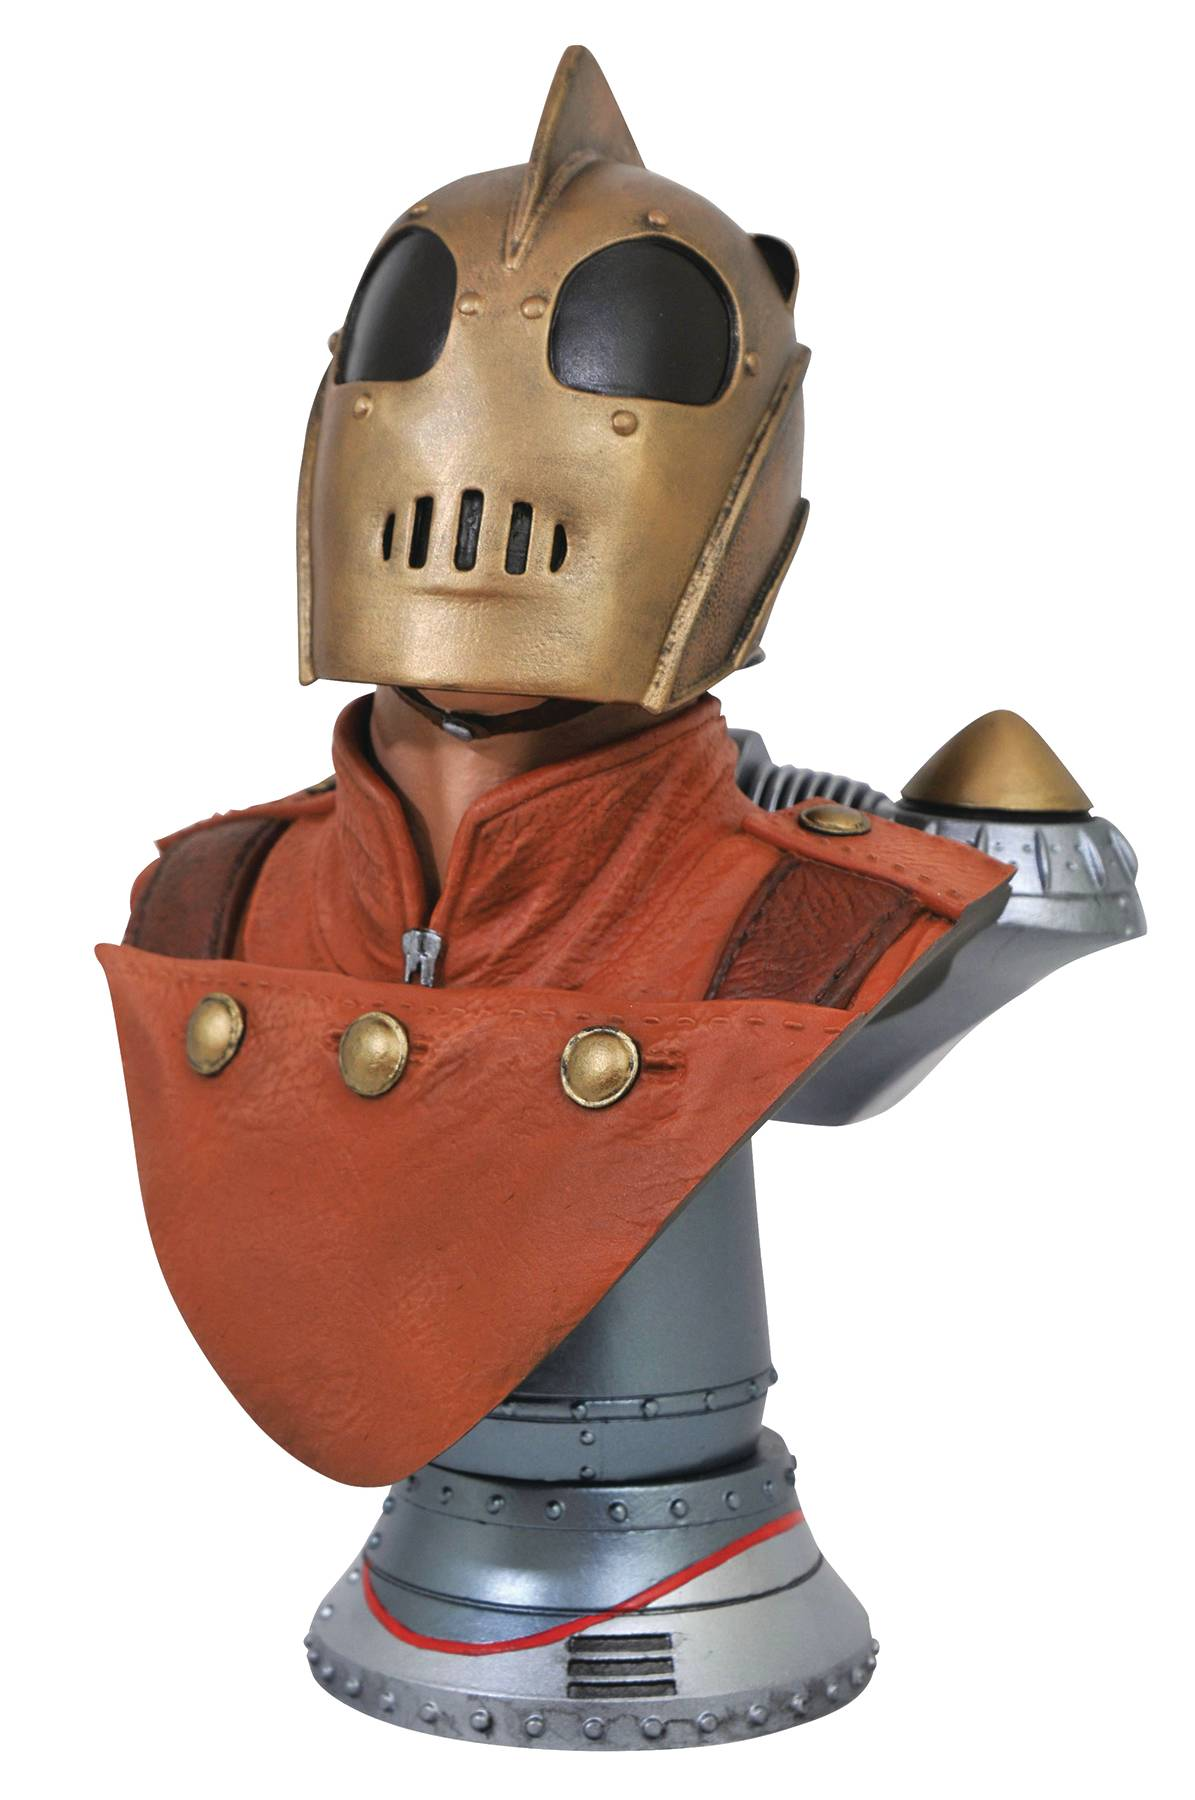 Pre-Order Diamond Legends Rocketeer 1/2 Scale Bust